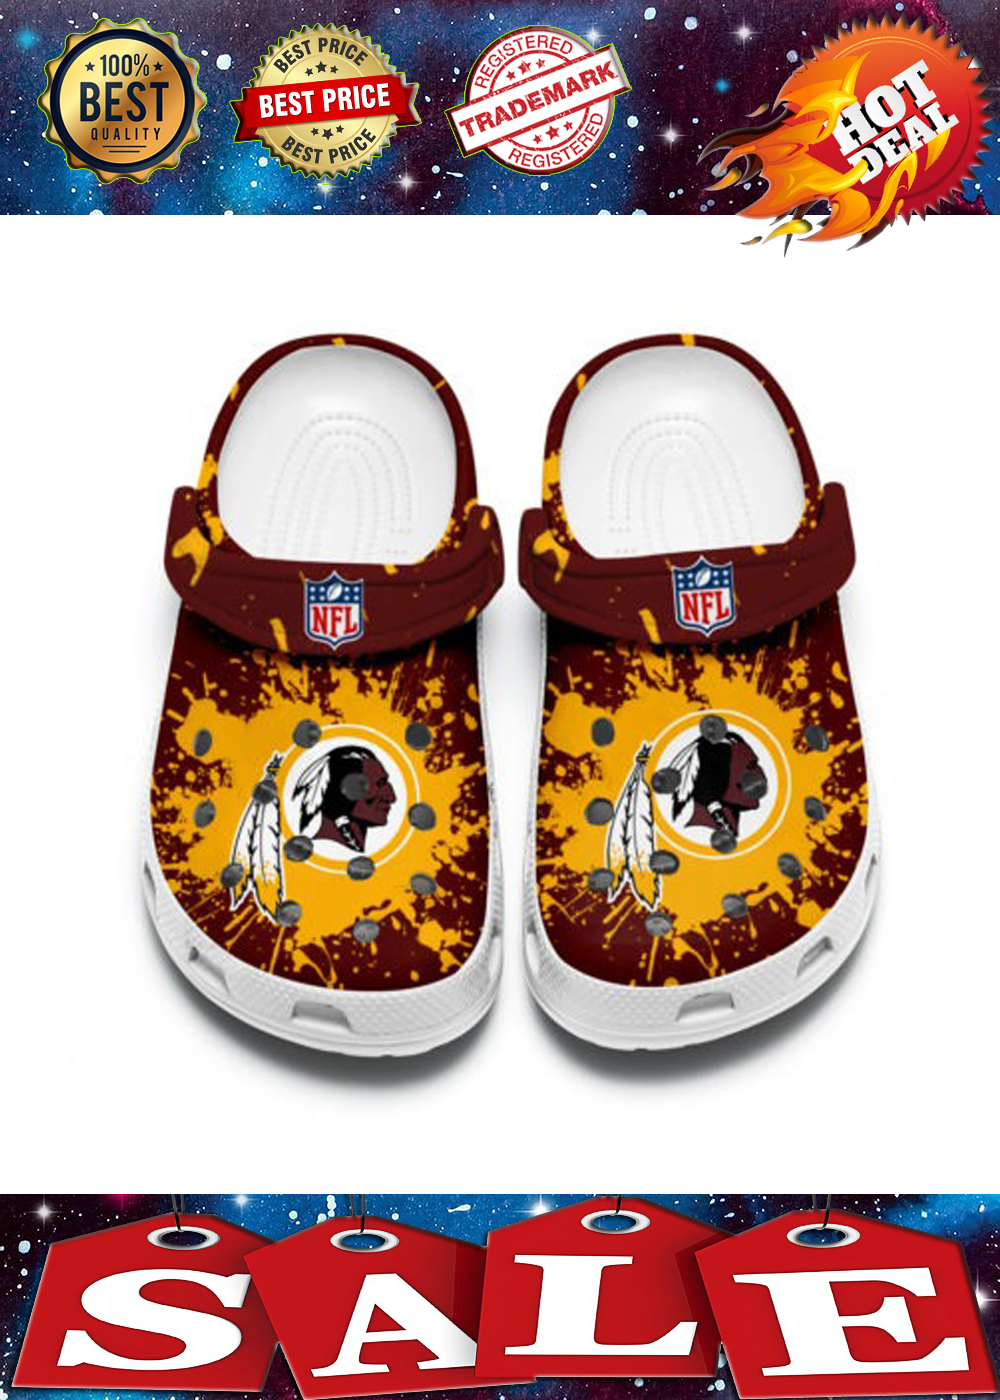 WASHINGTON REDSKINS CROCBAND CROCS SHOES 2